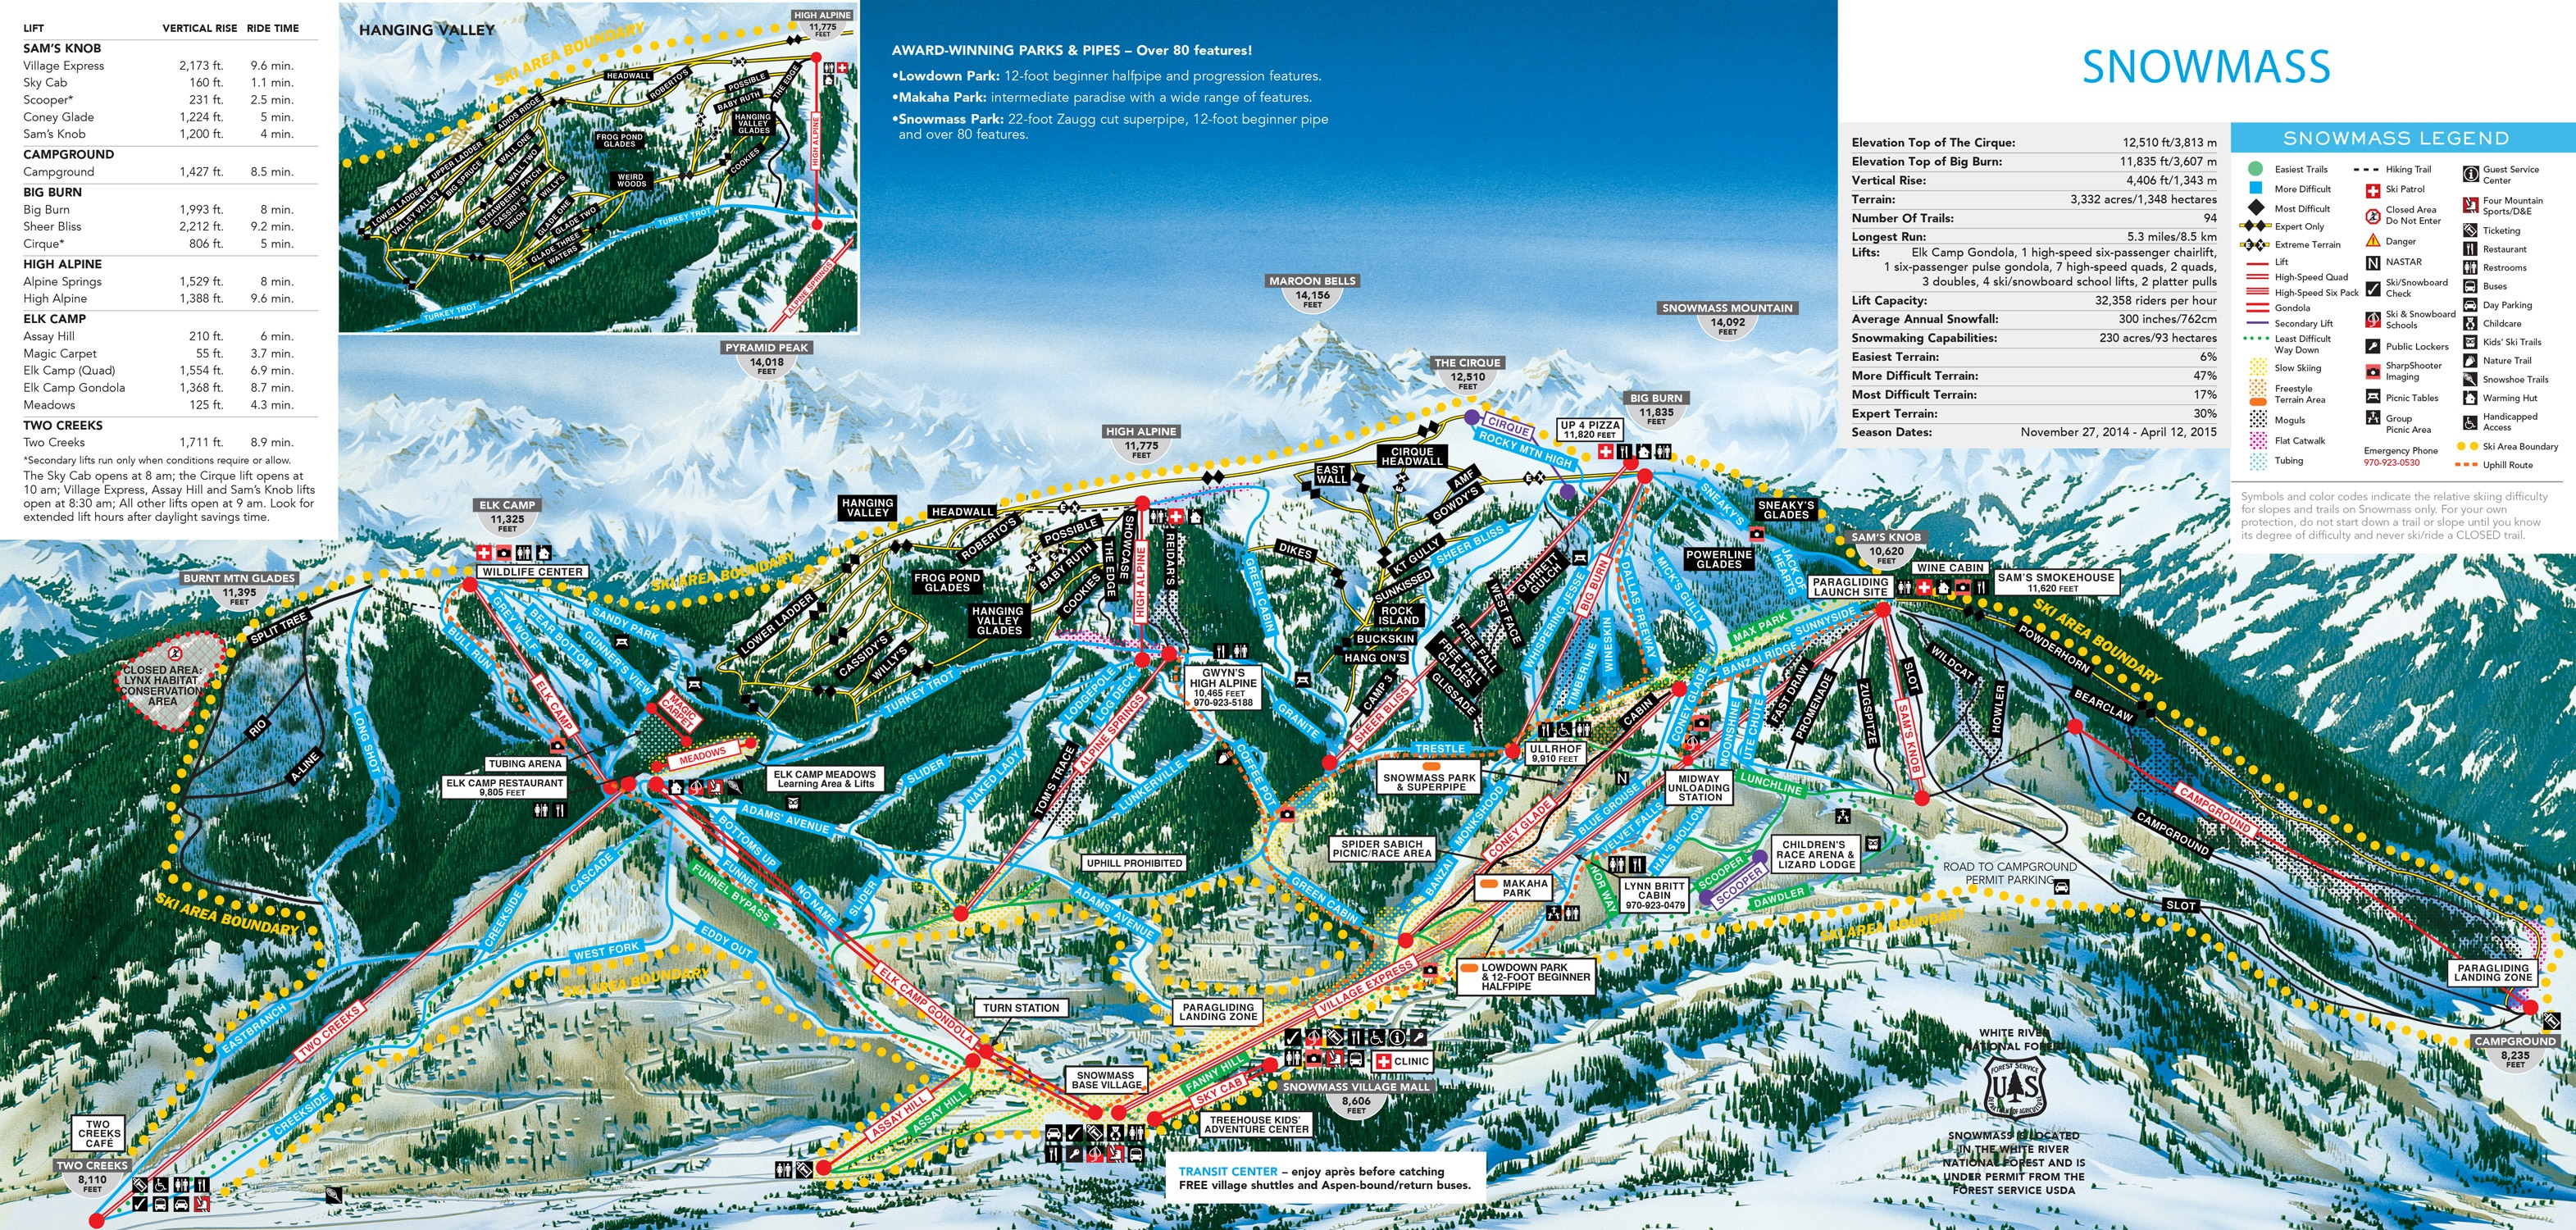 Aspen Ski Resort Aspen Ski Vacation Packages SkiSync - Western us ski resorts map